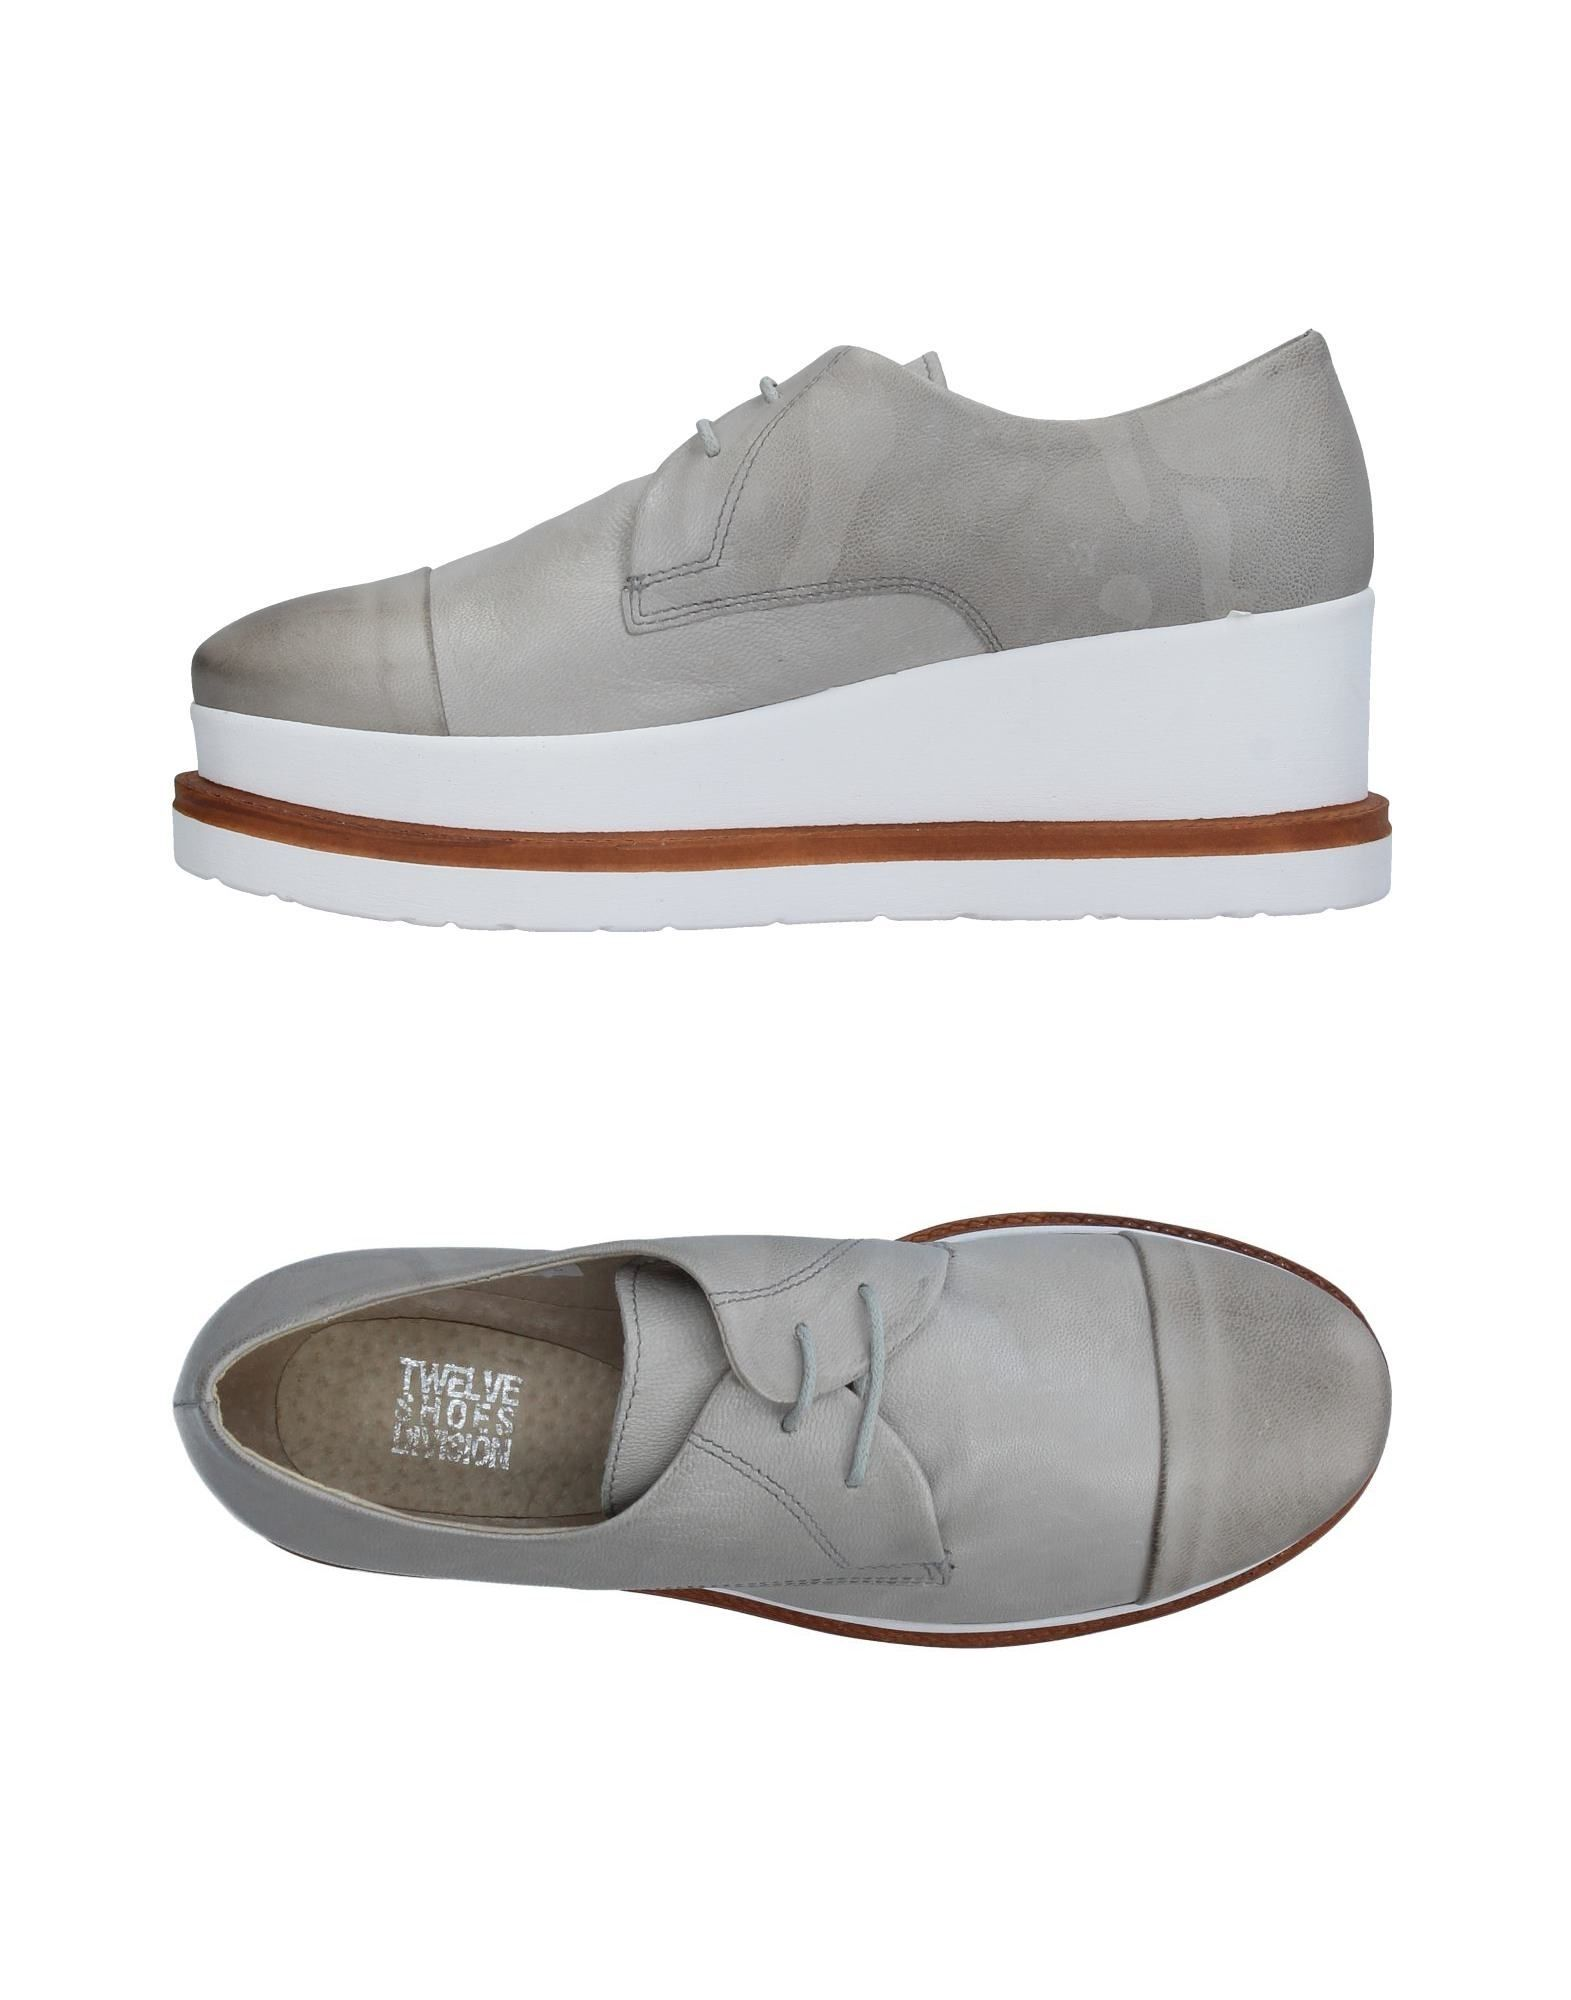 Chaussures - Chaussures À Lacets Tsd12 x0ph5e